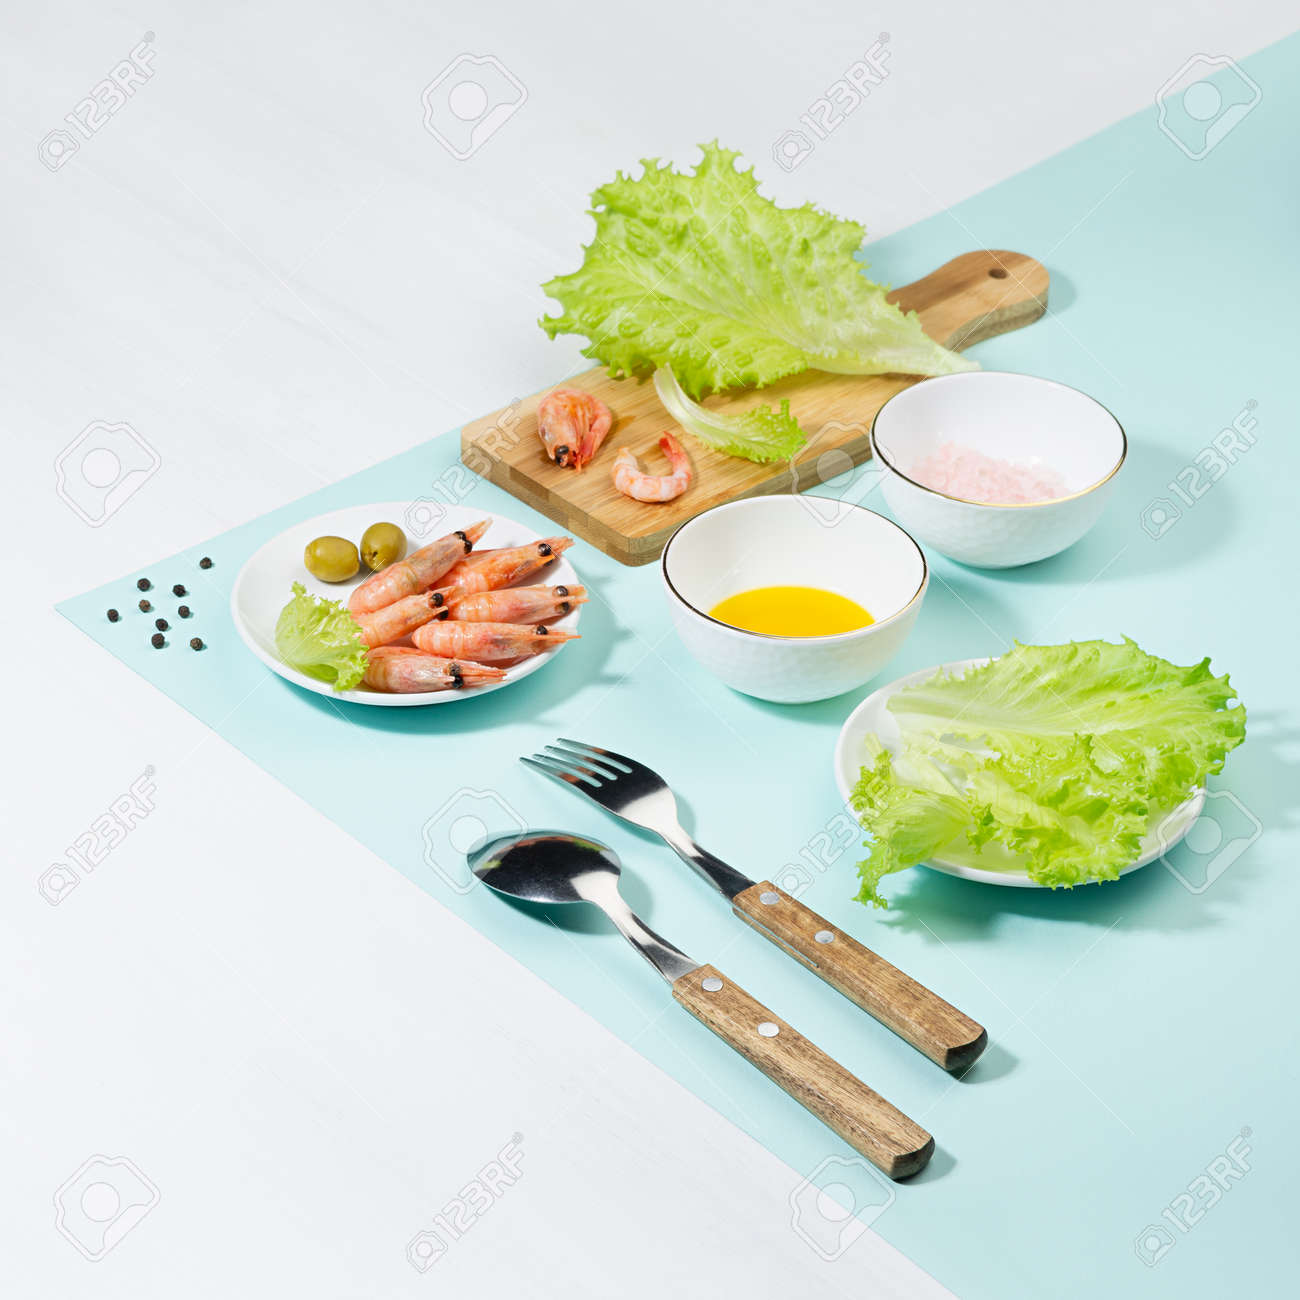 Dieting salad of fresh greens, shrimps with shadow in hard light on pastel mint color and white wood table, square. Summer healthy food in color modern style. - 168468974